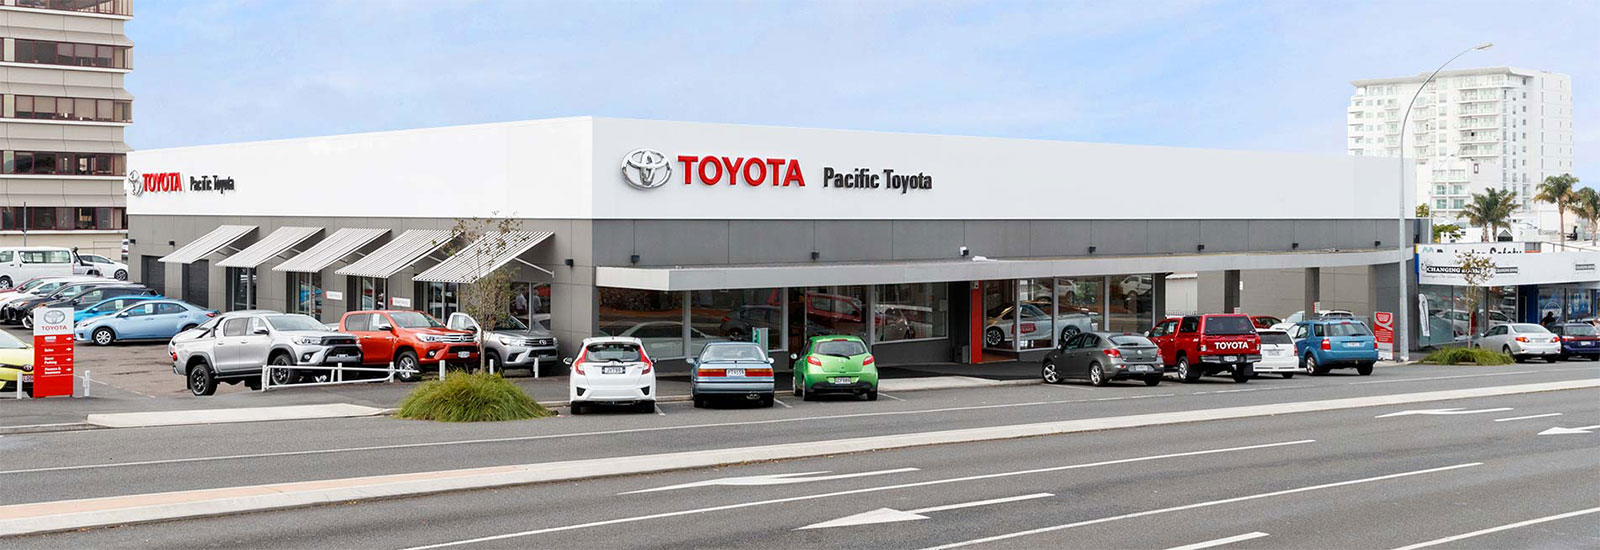 pacific_toyota_dealership_1600x550